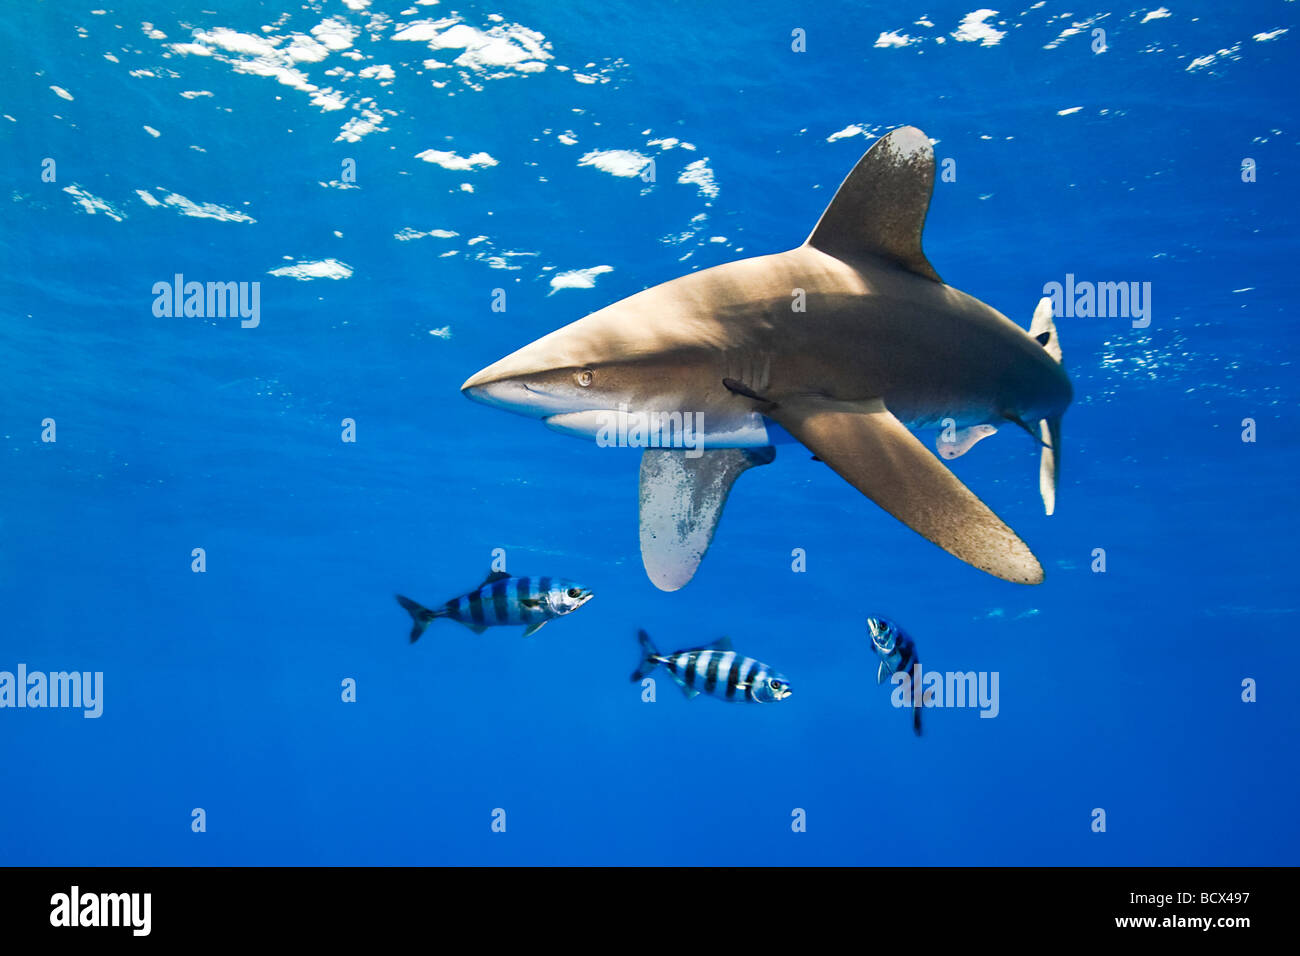 Oceanic Whitetip Shark with Pilot Fish Carcharhinus longimanus Naucrates ductor Pacific Ocean Hawaii USA - Stock Image